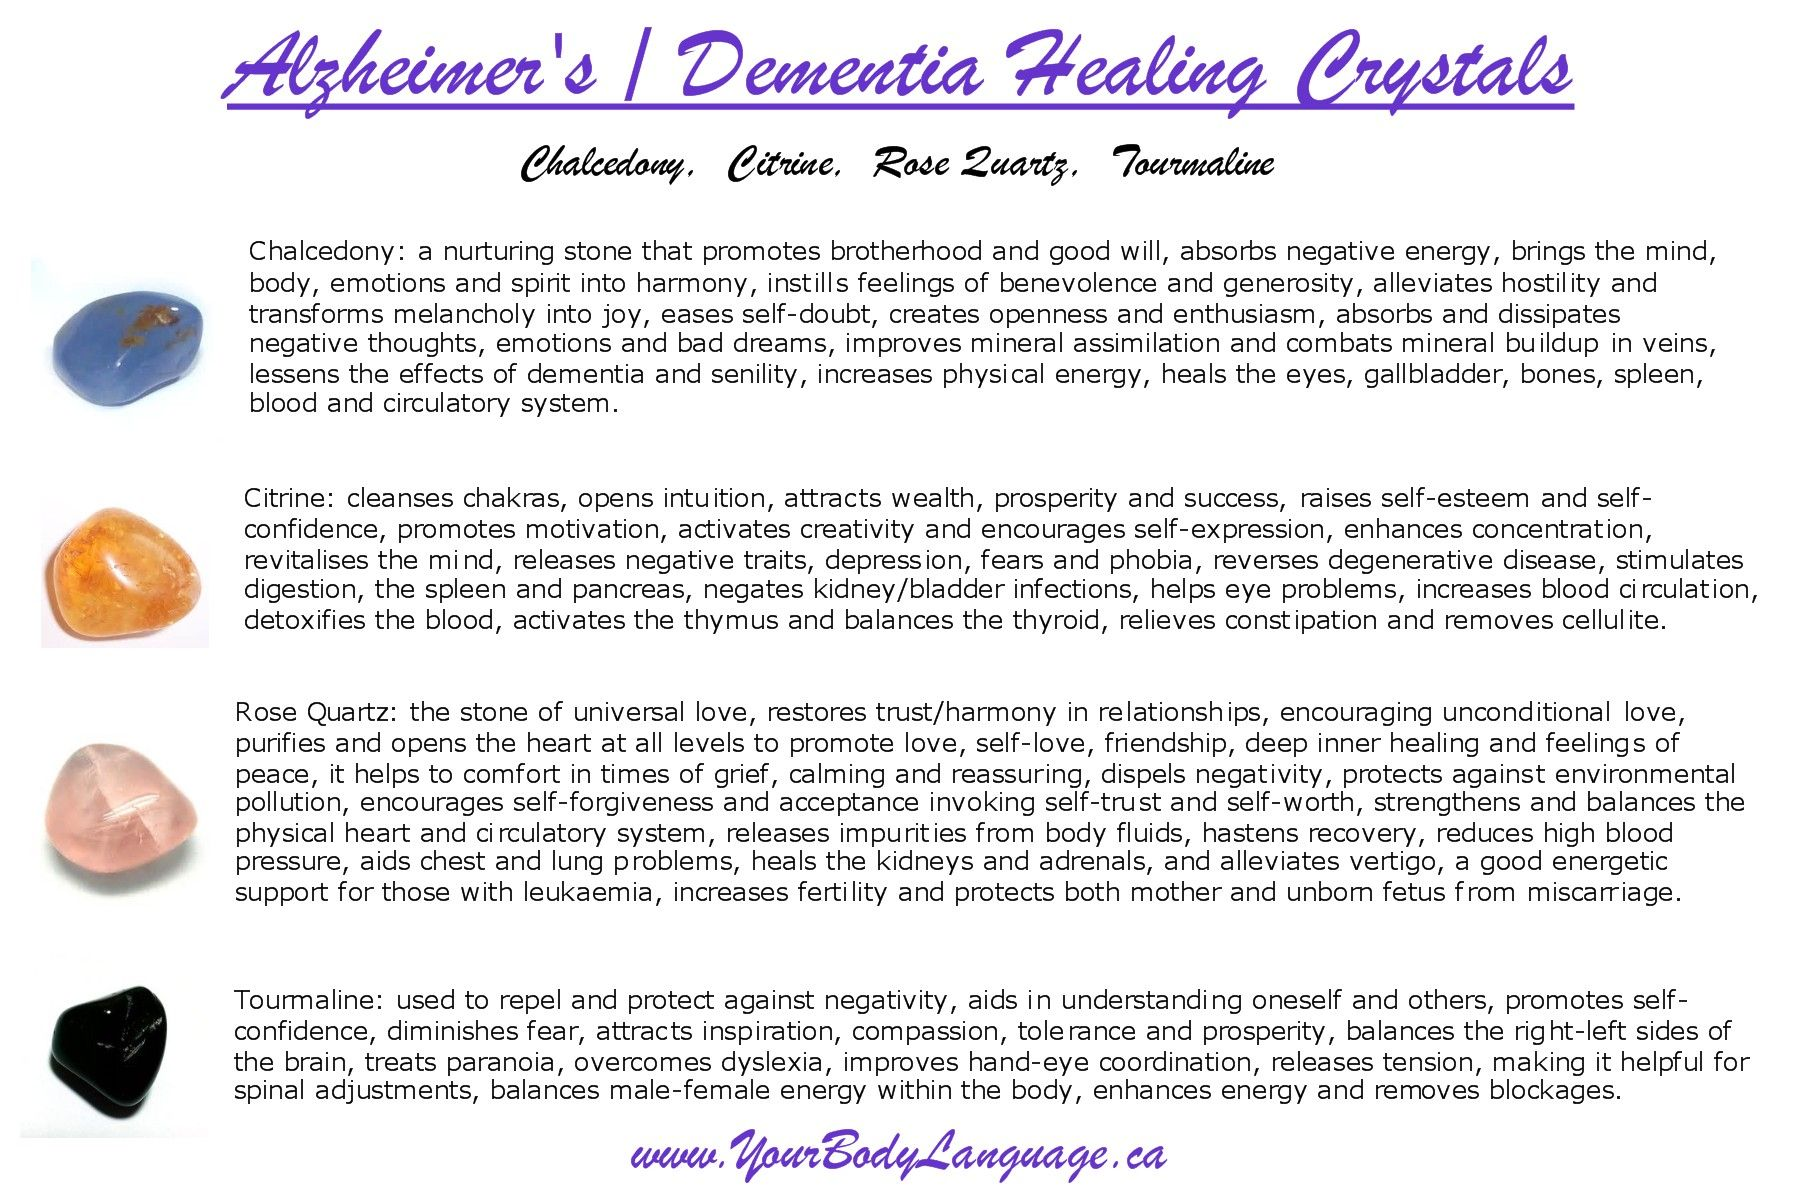 Alzheimer's/Dementia Crystal Healing Set $10 each, comes with 4